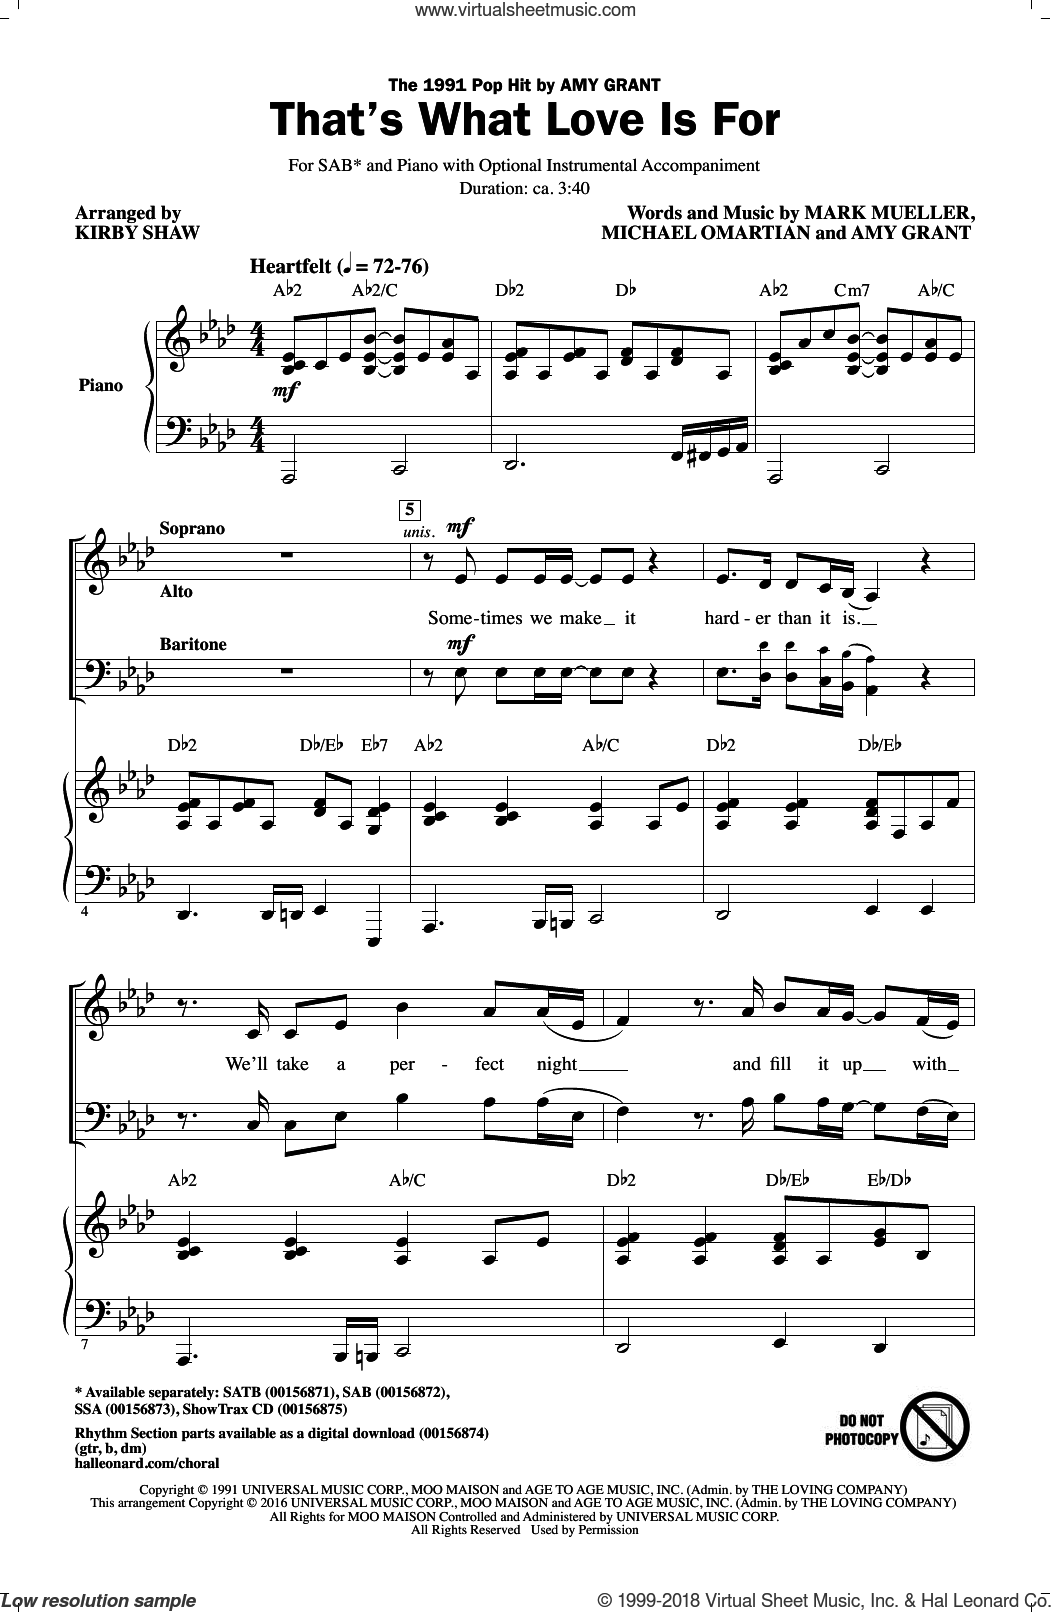 That's What Love Is For sheet music for choir (SAB: soprano, alto, bass) by Amy Grant, Kirby Shaw, Mark Mueller and Michael Omartian, intermediate skill level